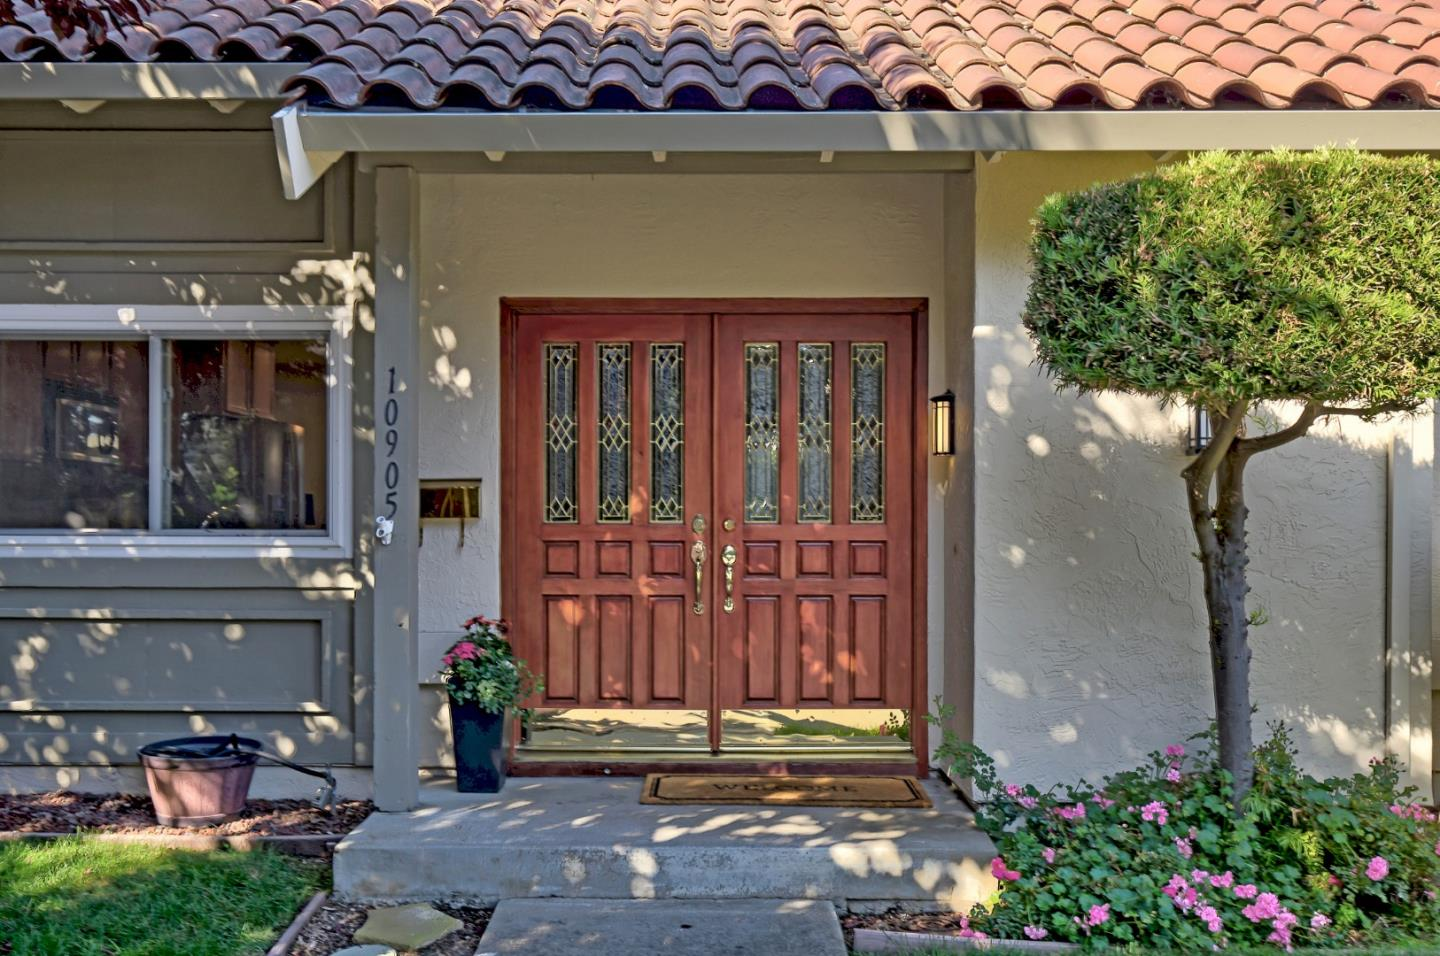 10905 SWEET OAK ST, CUPERTINO, CA 95014